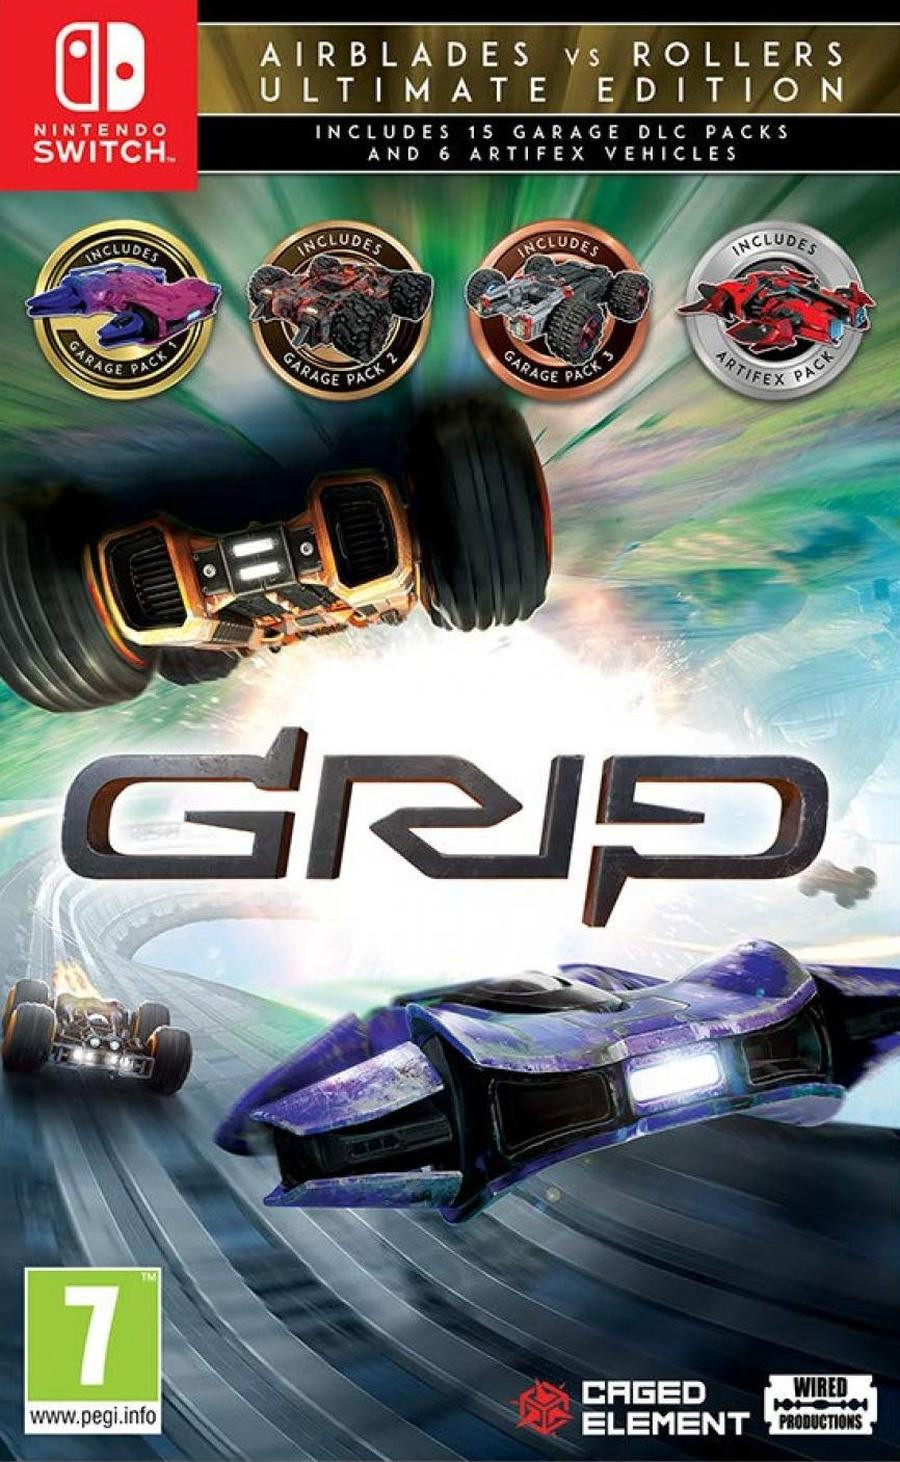 SWITCH GRIP - Combat Racing - Rollers vs AirBlades Ultimate Edition